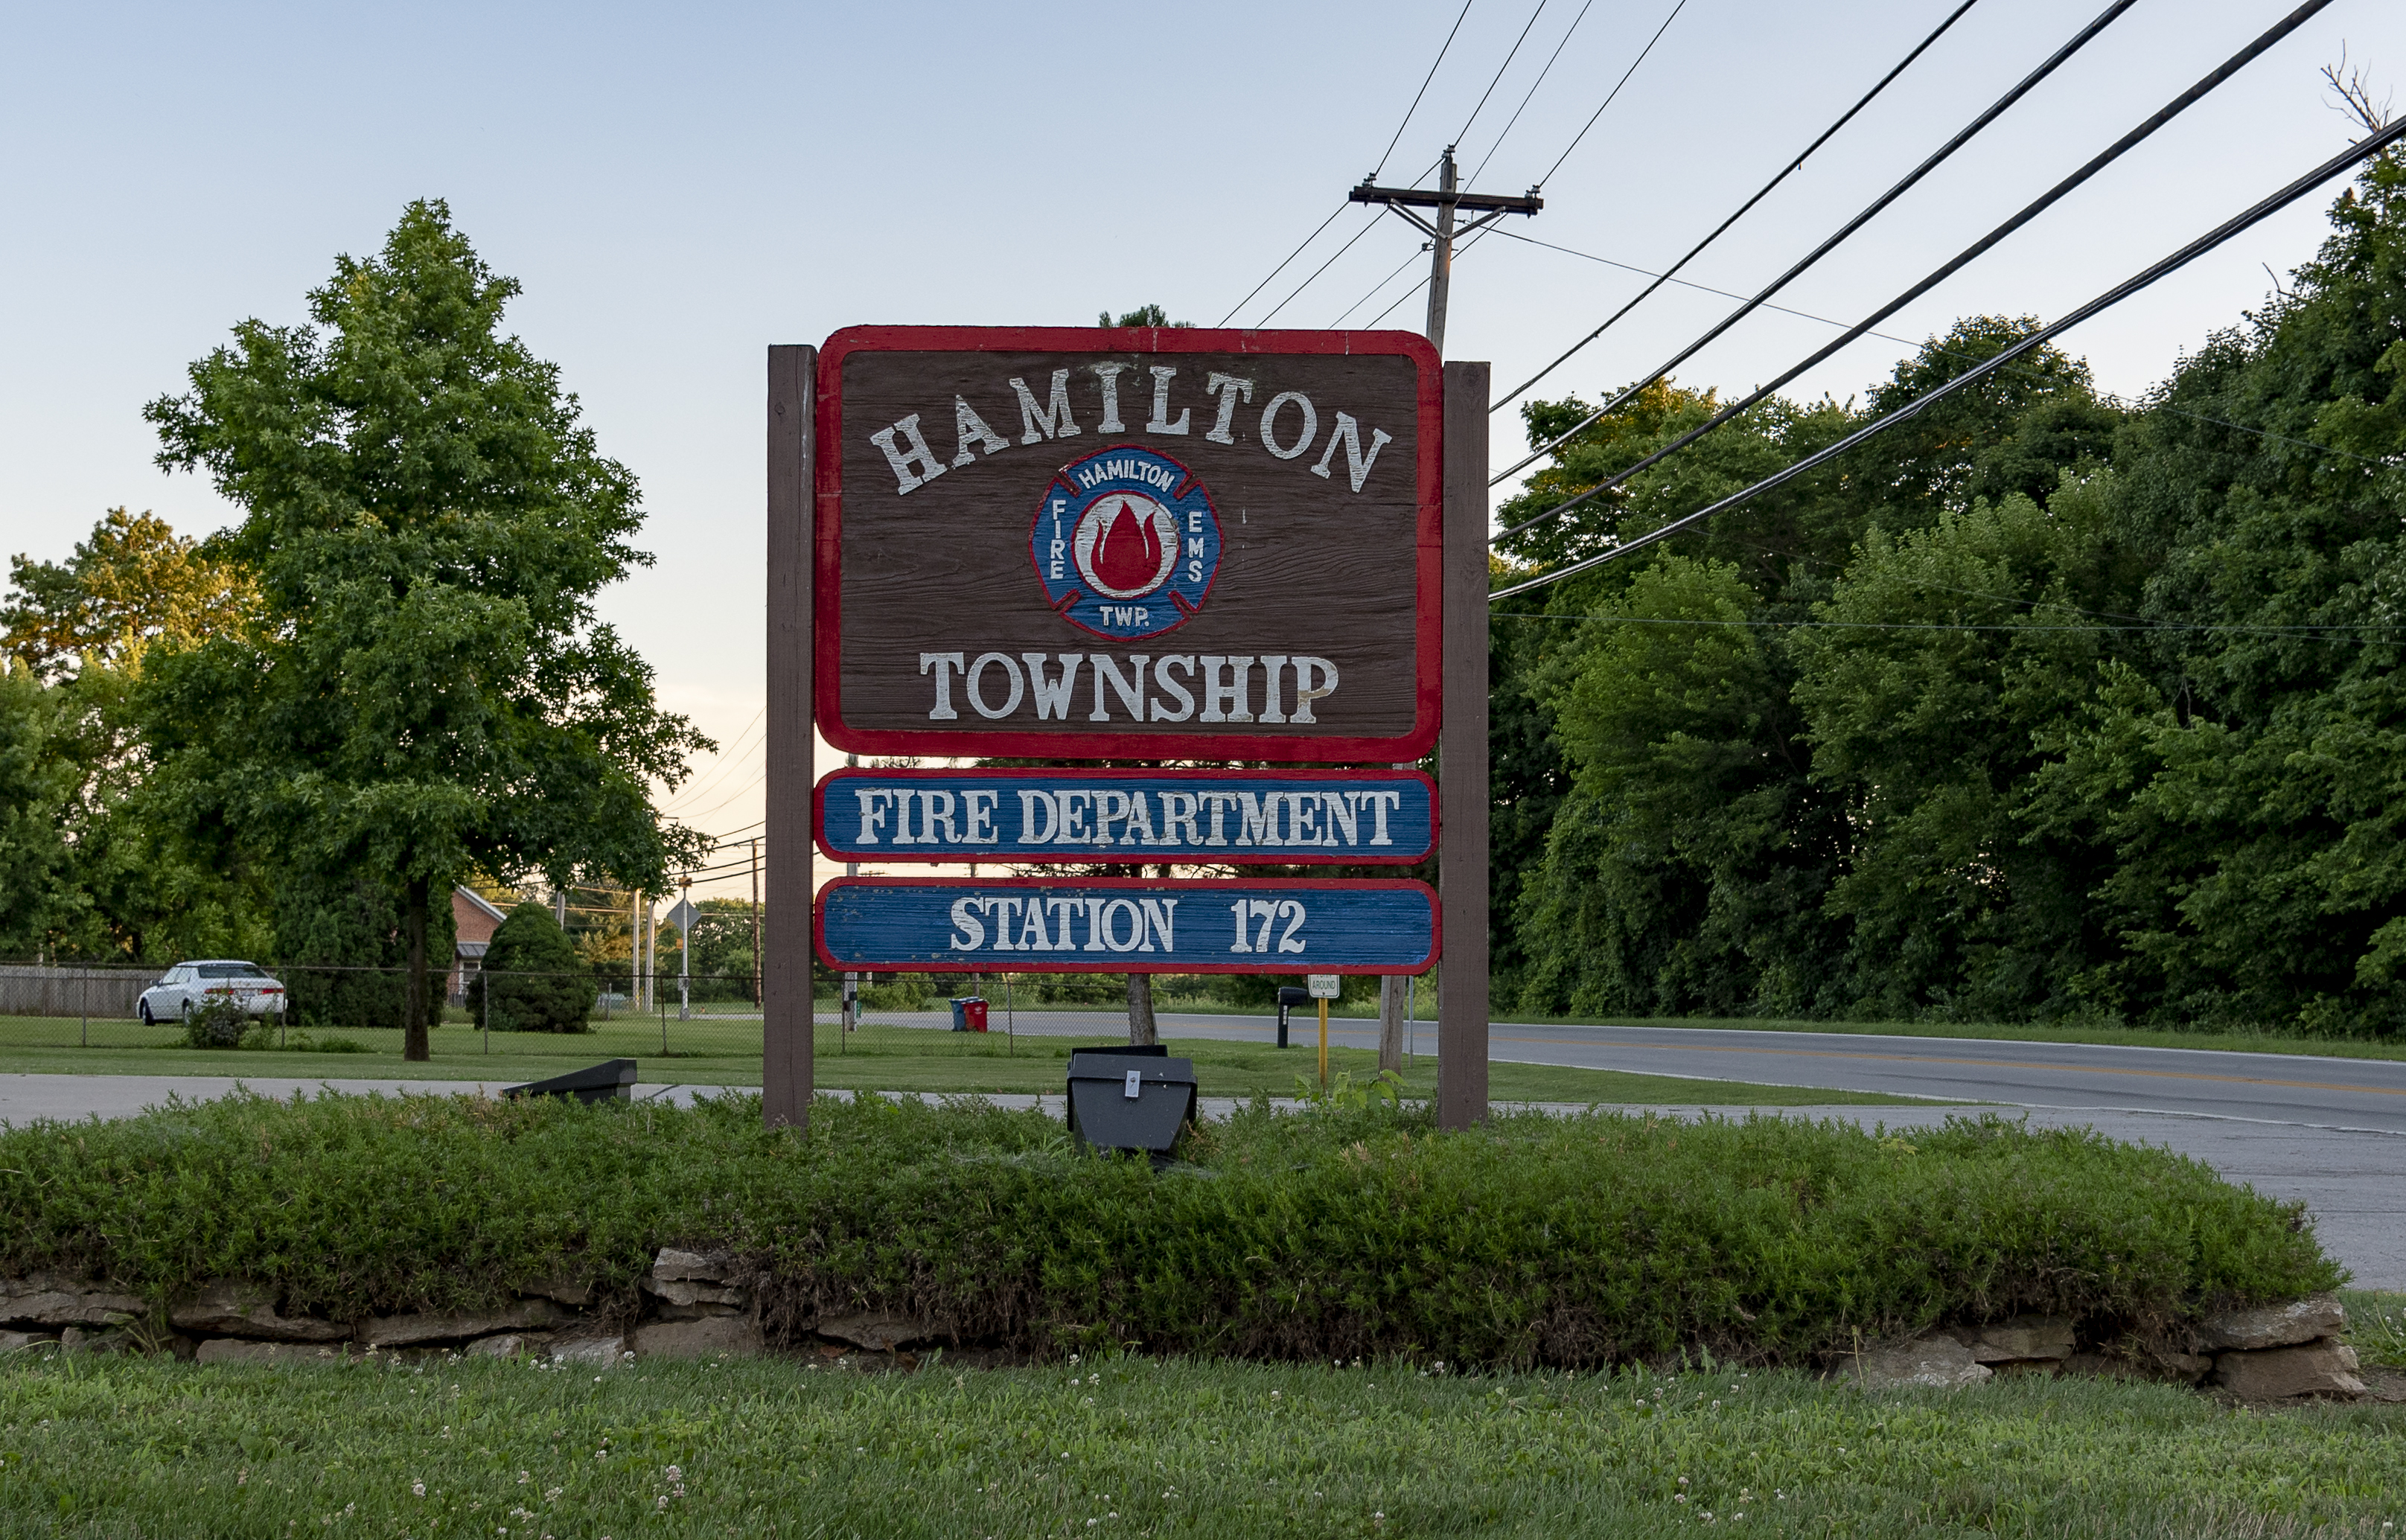 Hamilton Township, Franklin County, Ohio - Wikipedia on liberty twp ohio map, olmsted twp ohio map, washington twp ohio map, fairfield twp ohio map, monroe twp ohio map,